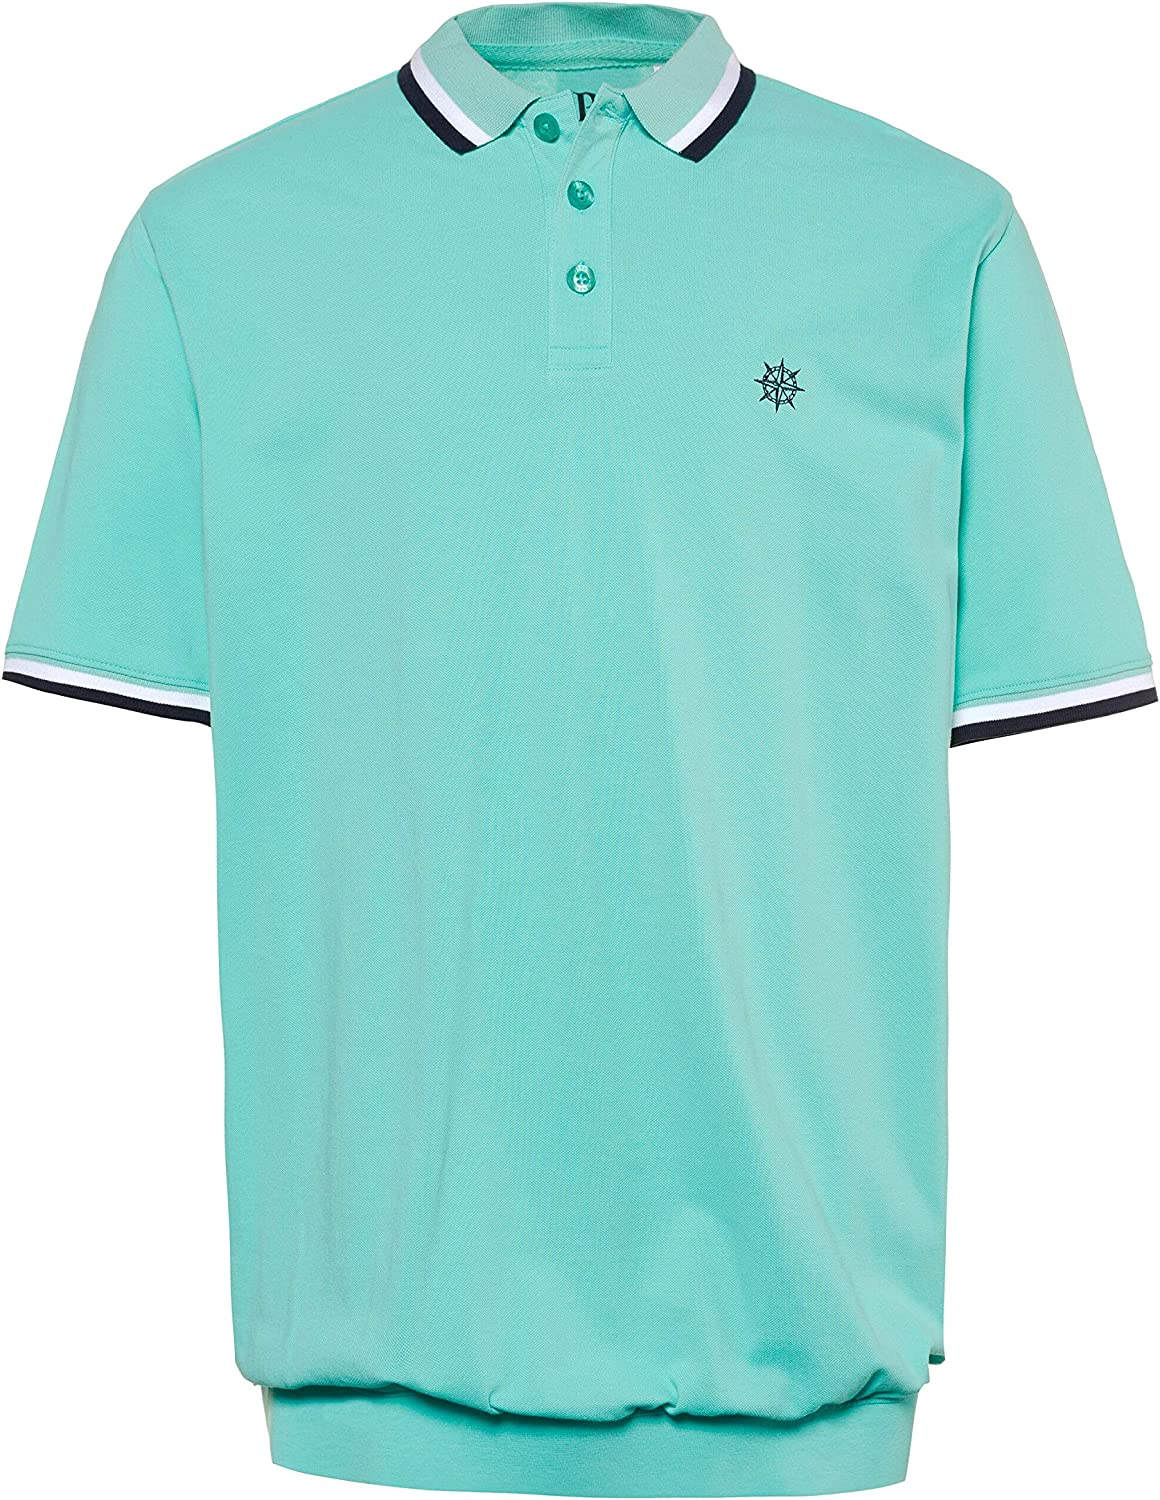 JP 1880 Mens Big /& Tall Contrast Stripe Polo Shirt Turquoise XXXXXXX-Large 714328 46